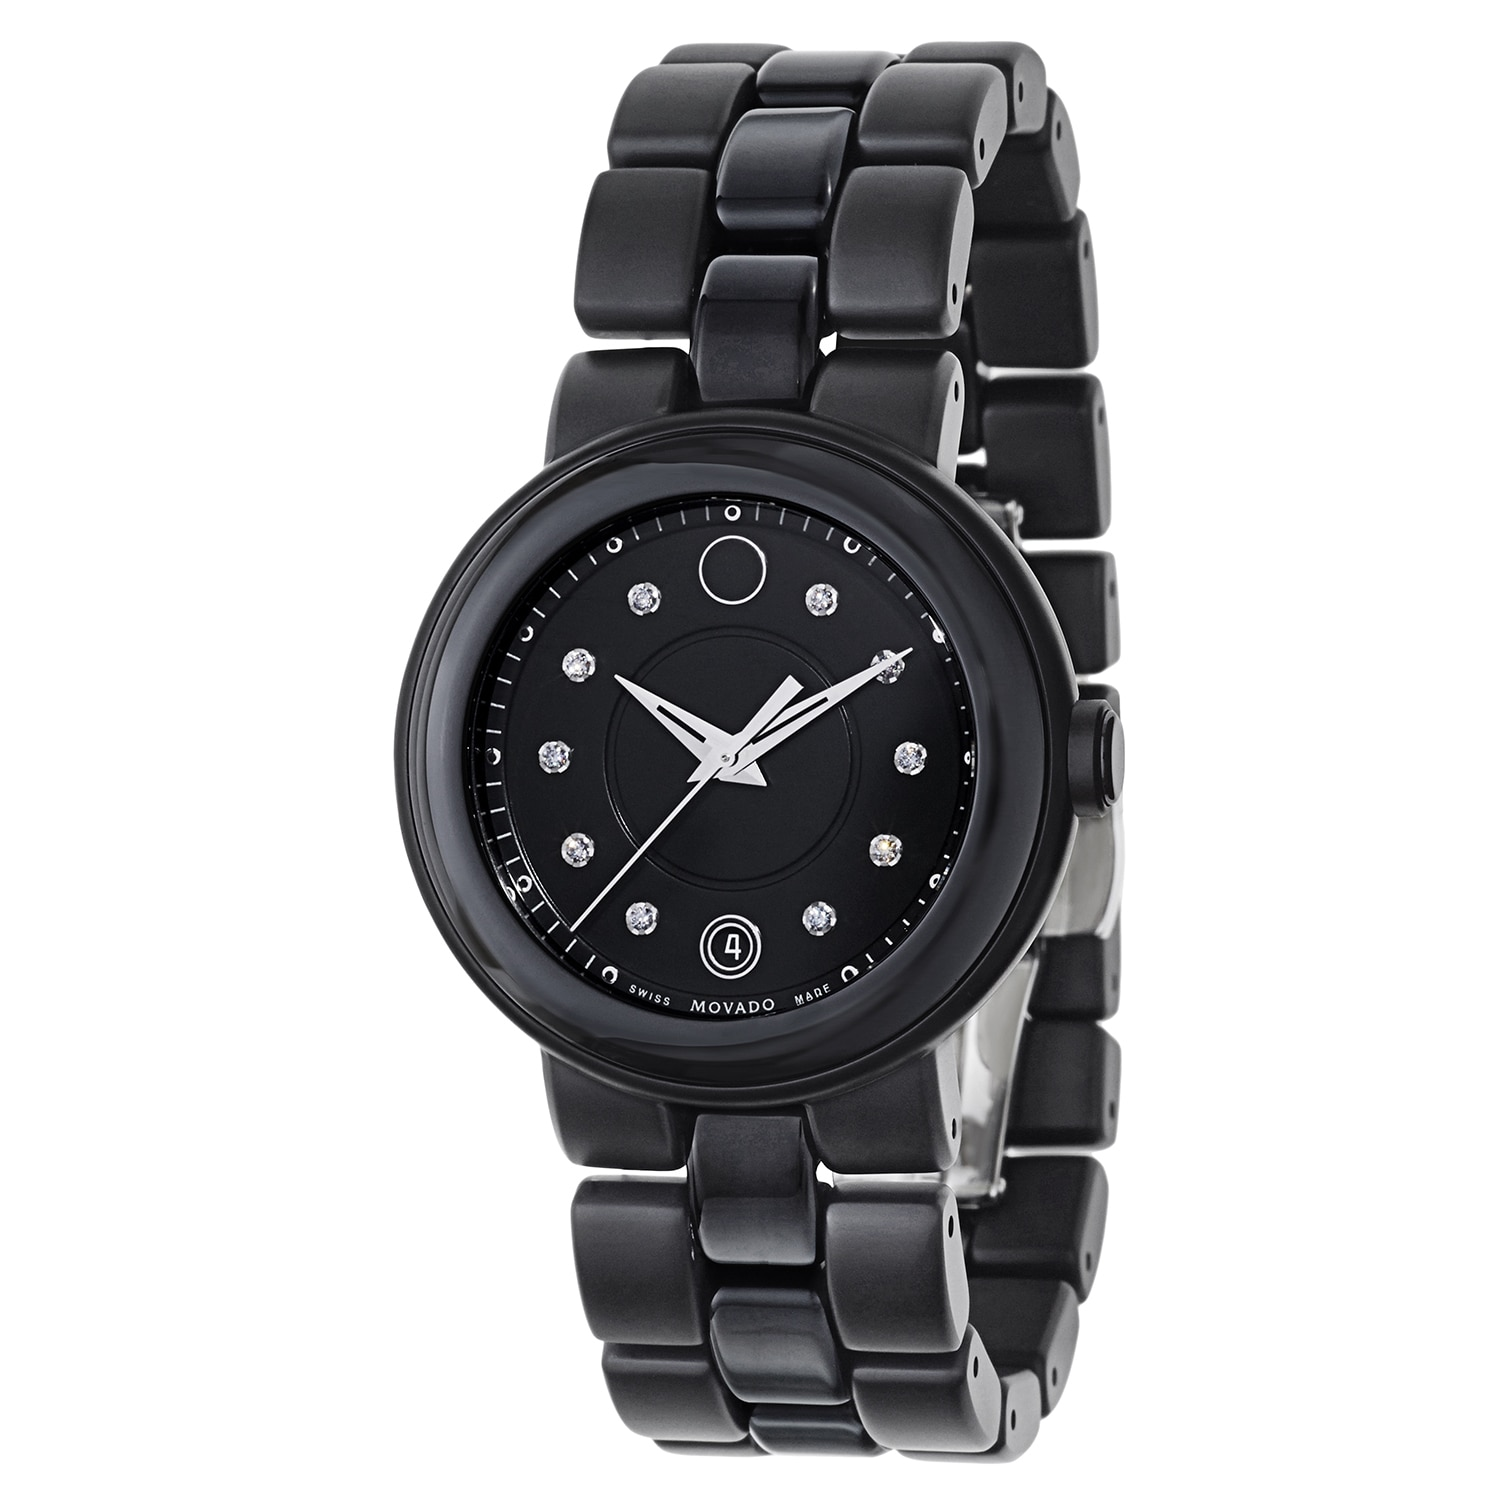 Movado Women's 0606693 Cerena Stainless Steel Watch (Watc...